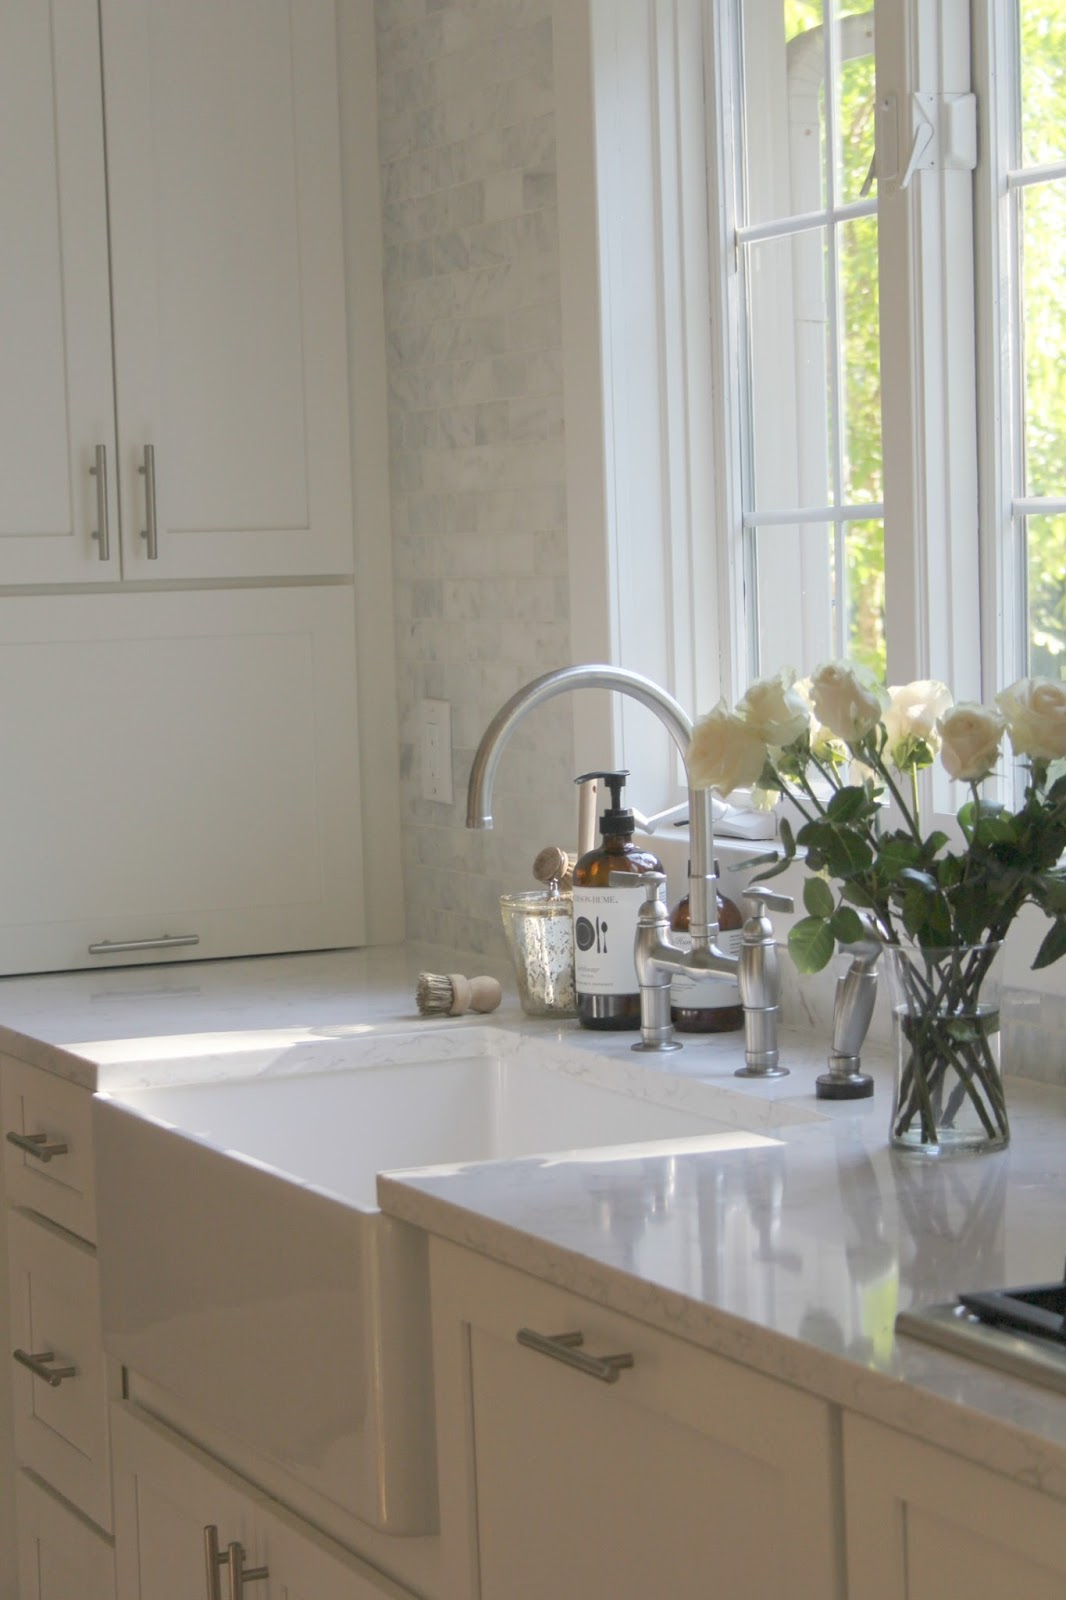 Serene white kitchen with Shaker cabinets, fireclay apron front farm sink, bridge faucet, Viatera quartz countertop (Minuet), and marble subway tile backsplash. #hellolovelystudio #kitchen #whitekitchen #serene #classic #quartz #subwaytile #viateraquartz #minuet